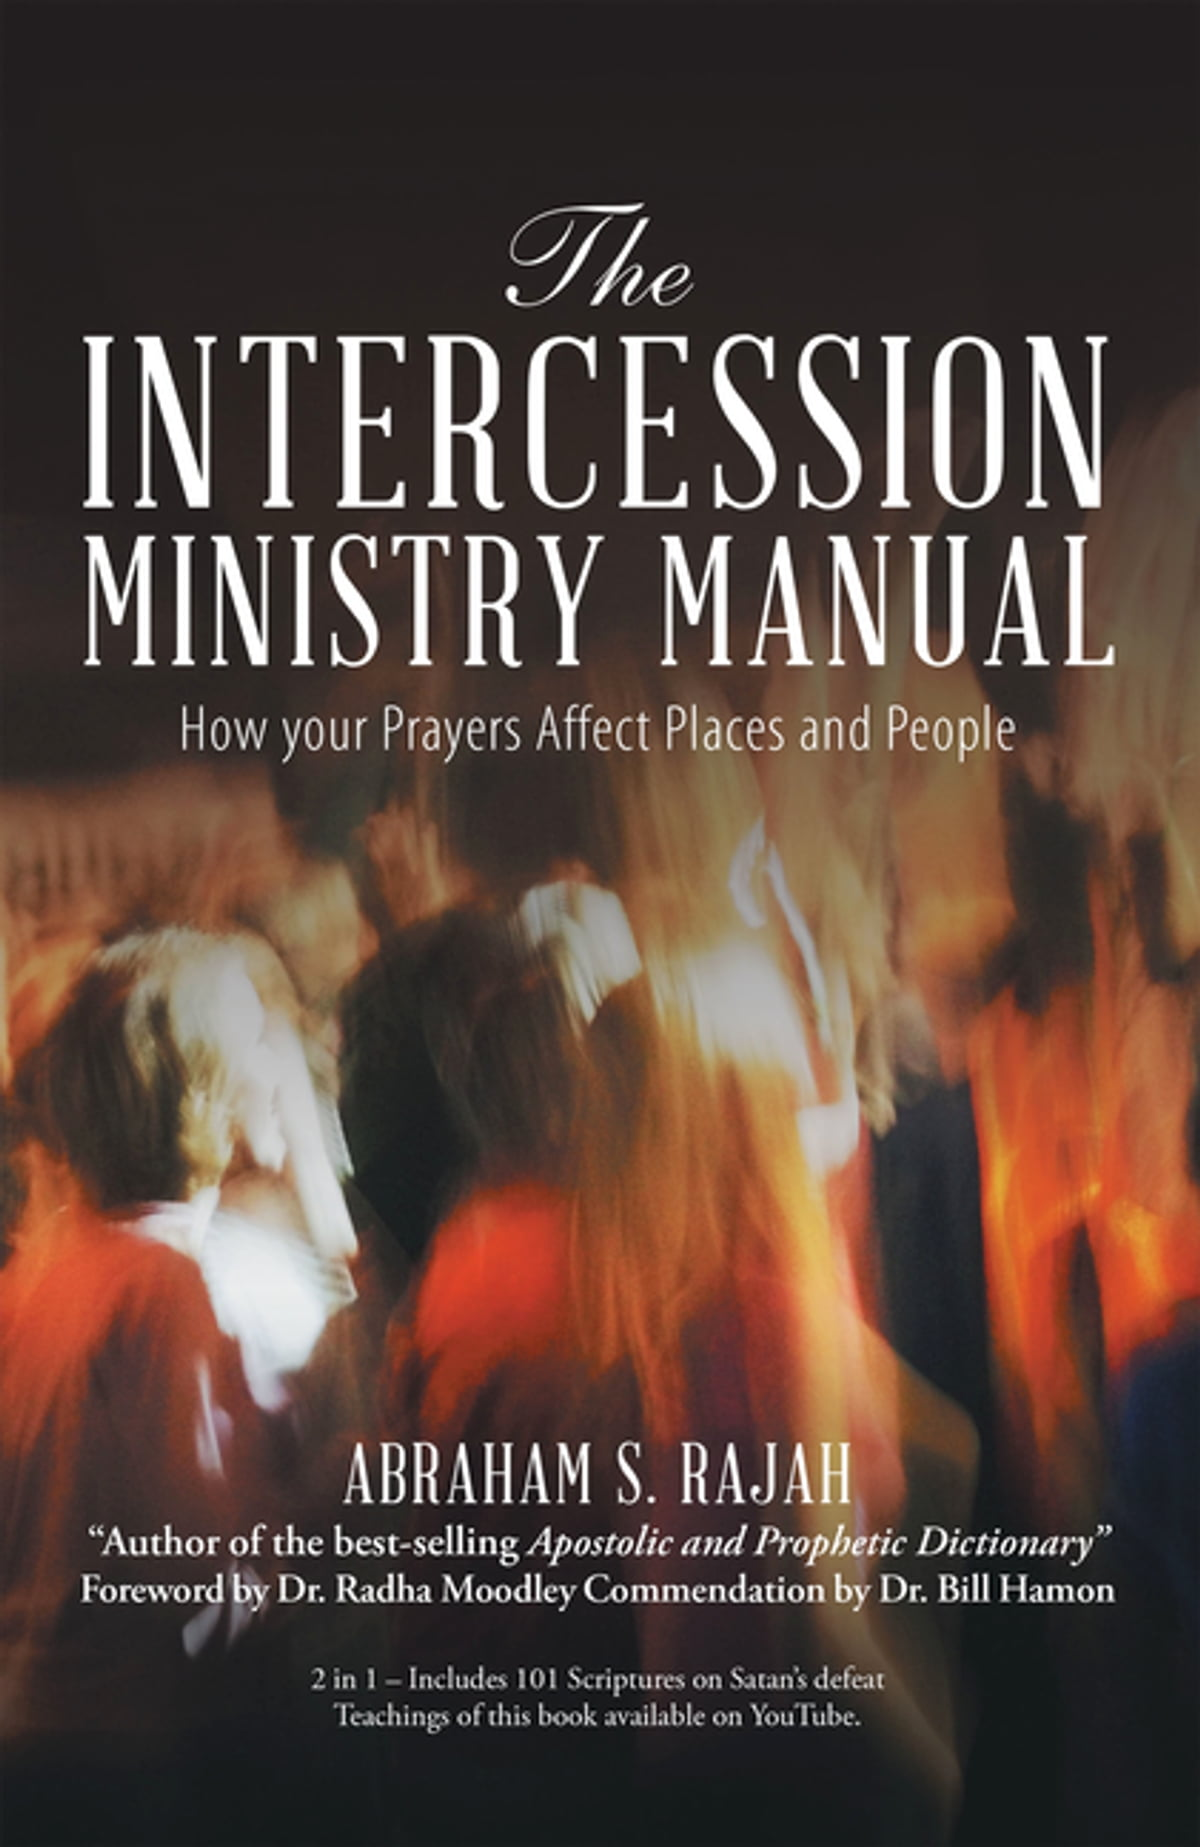 The Intercession Ministry Manual eBook by Abraham S. Rajah - 9781973612223  | Rakuten Kobo